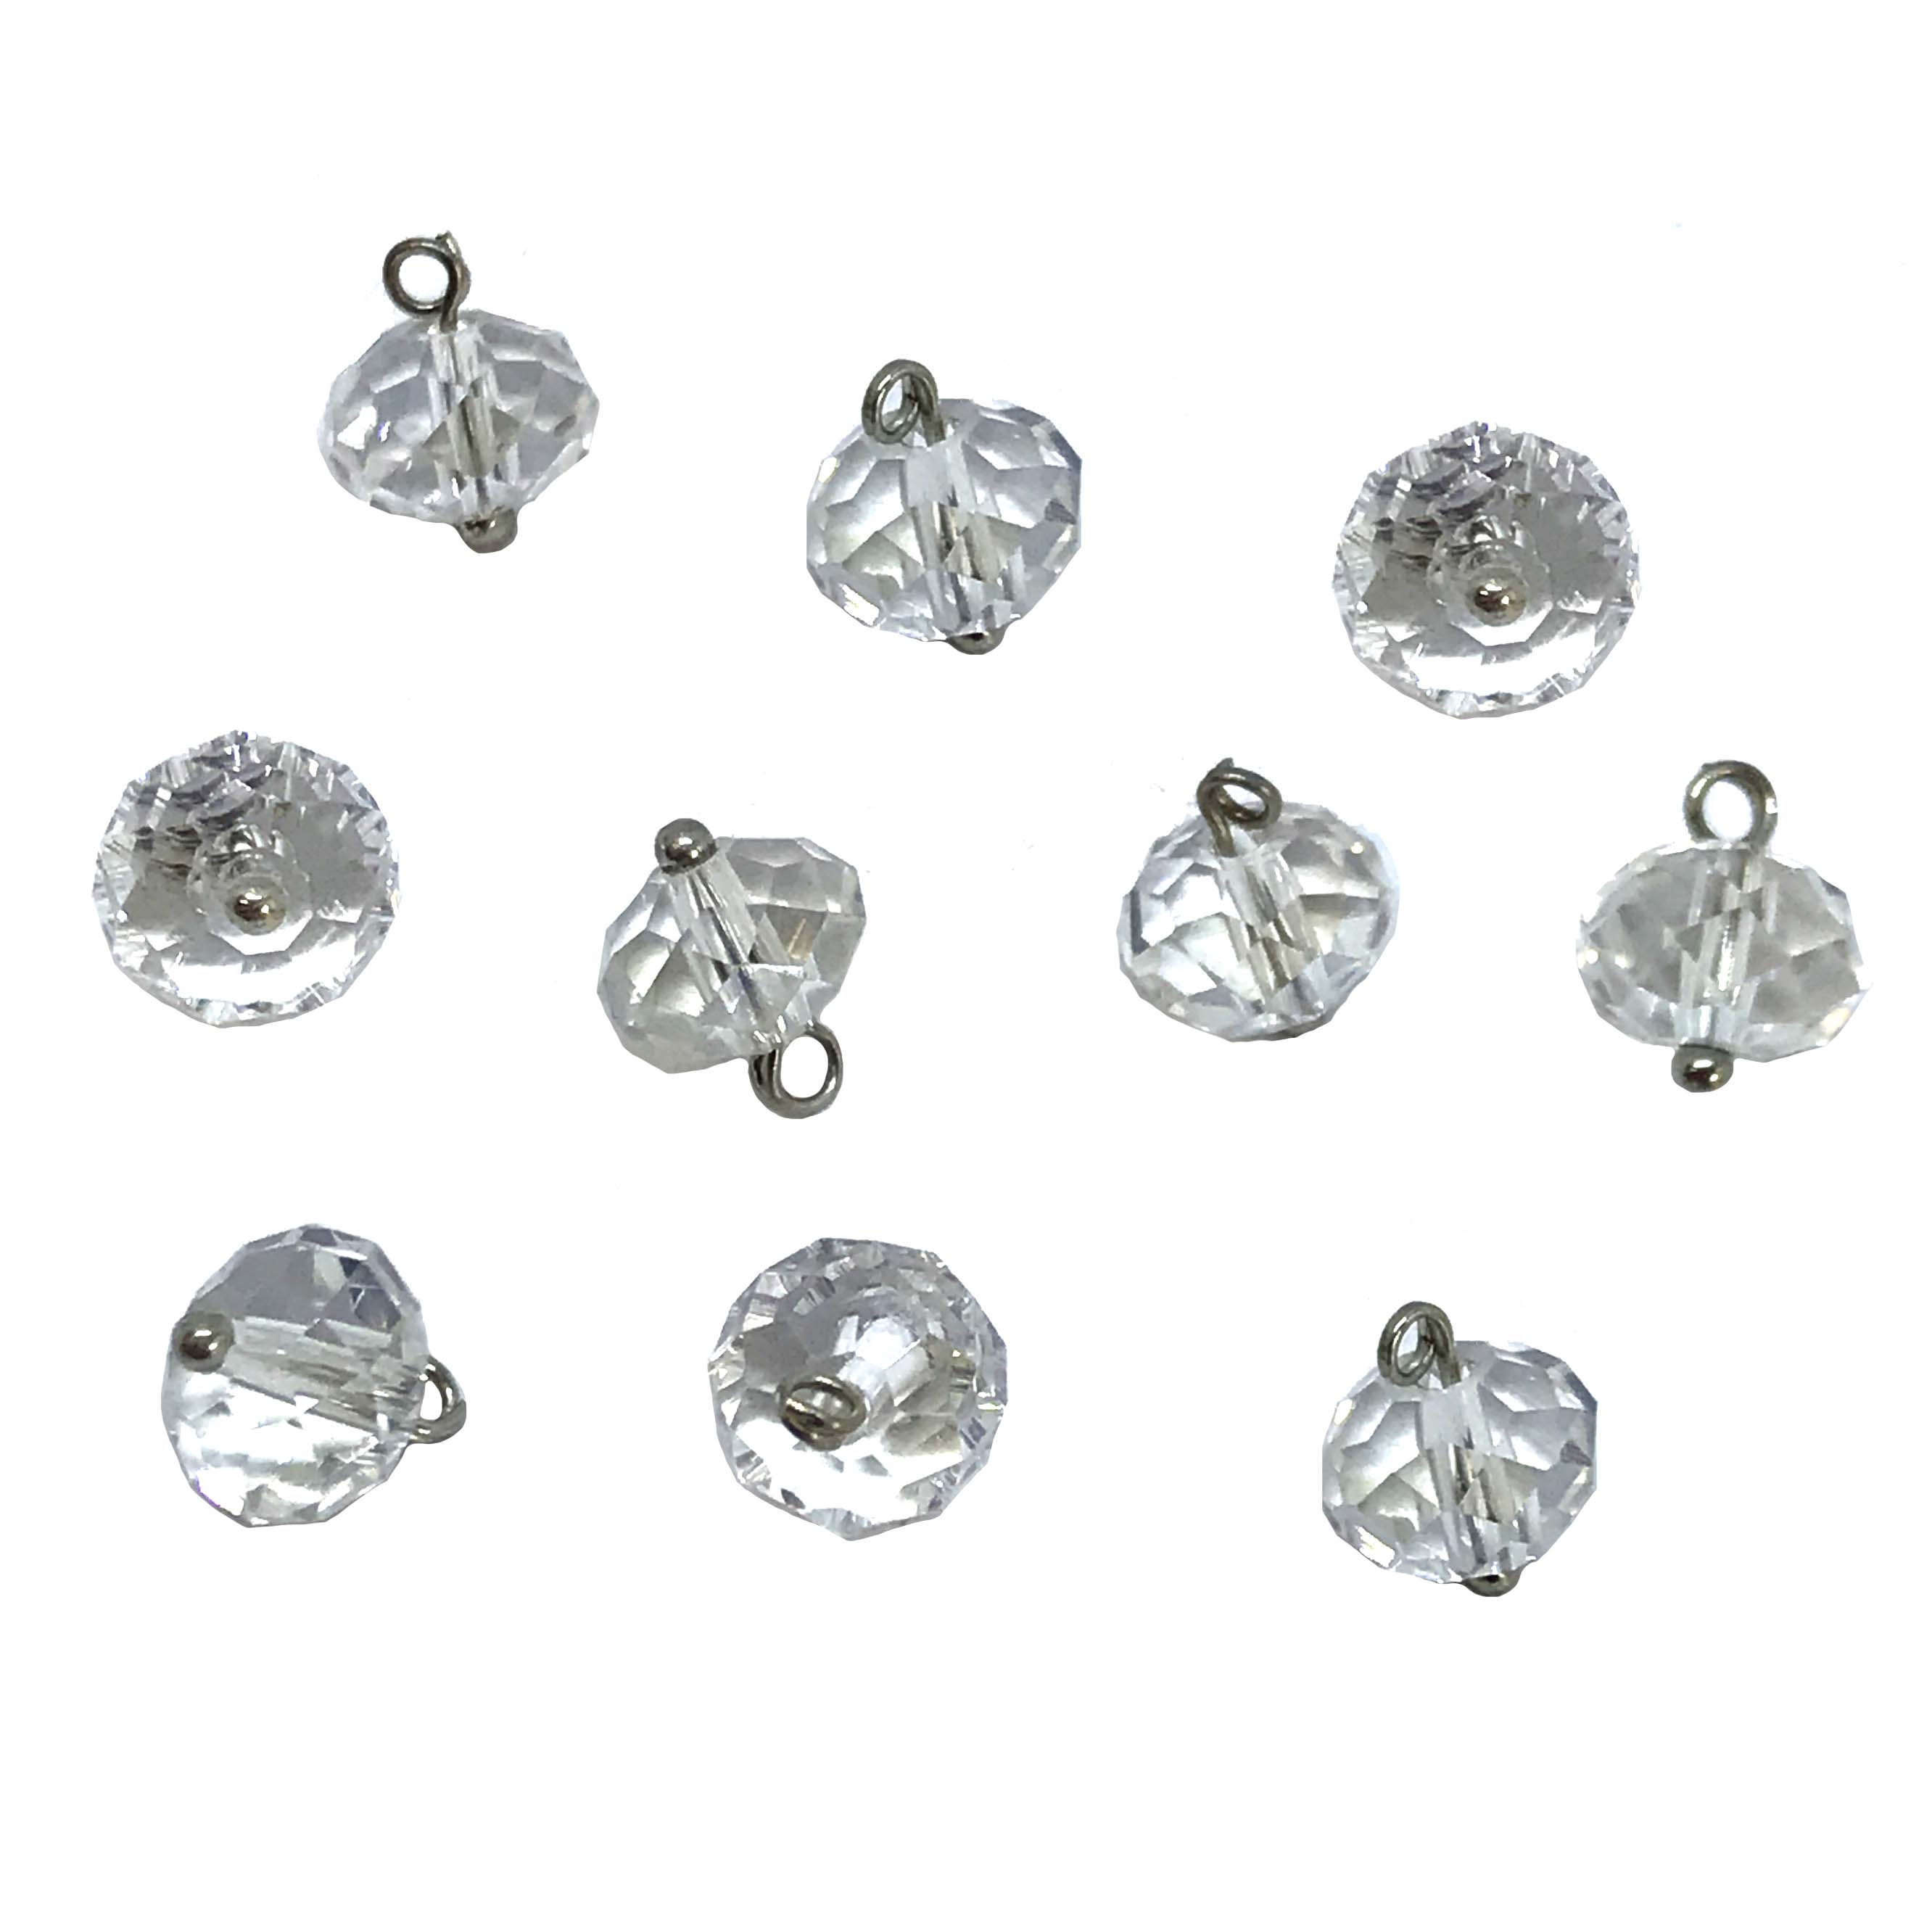 vintage faceted glass drops, clear beads, 01040, transparent beads, beads with bails, looped beads, beads on headpins, clear glass drops, glass charms, charms, design embellishments, bead charms, crystal clear beads, 6x8mm